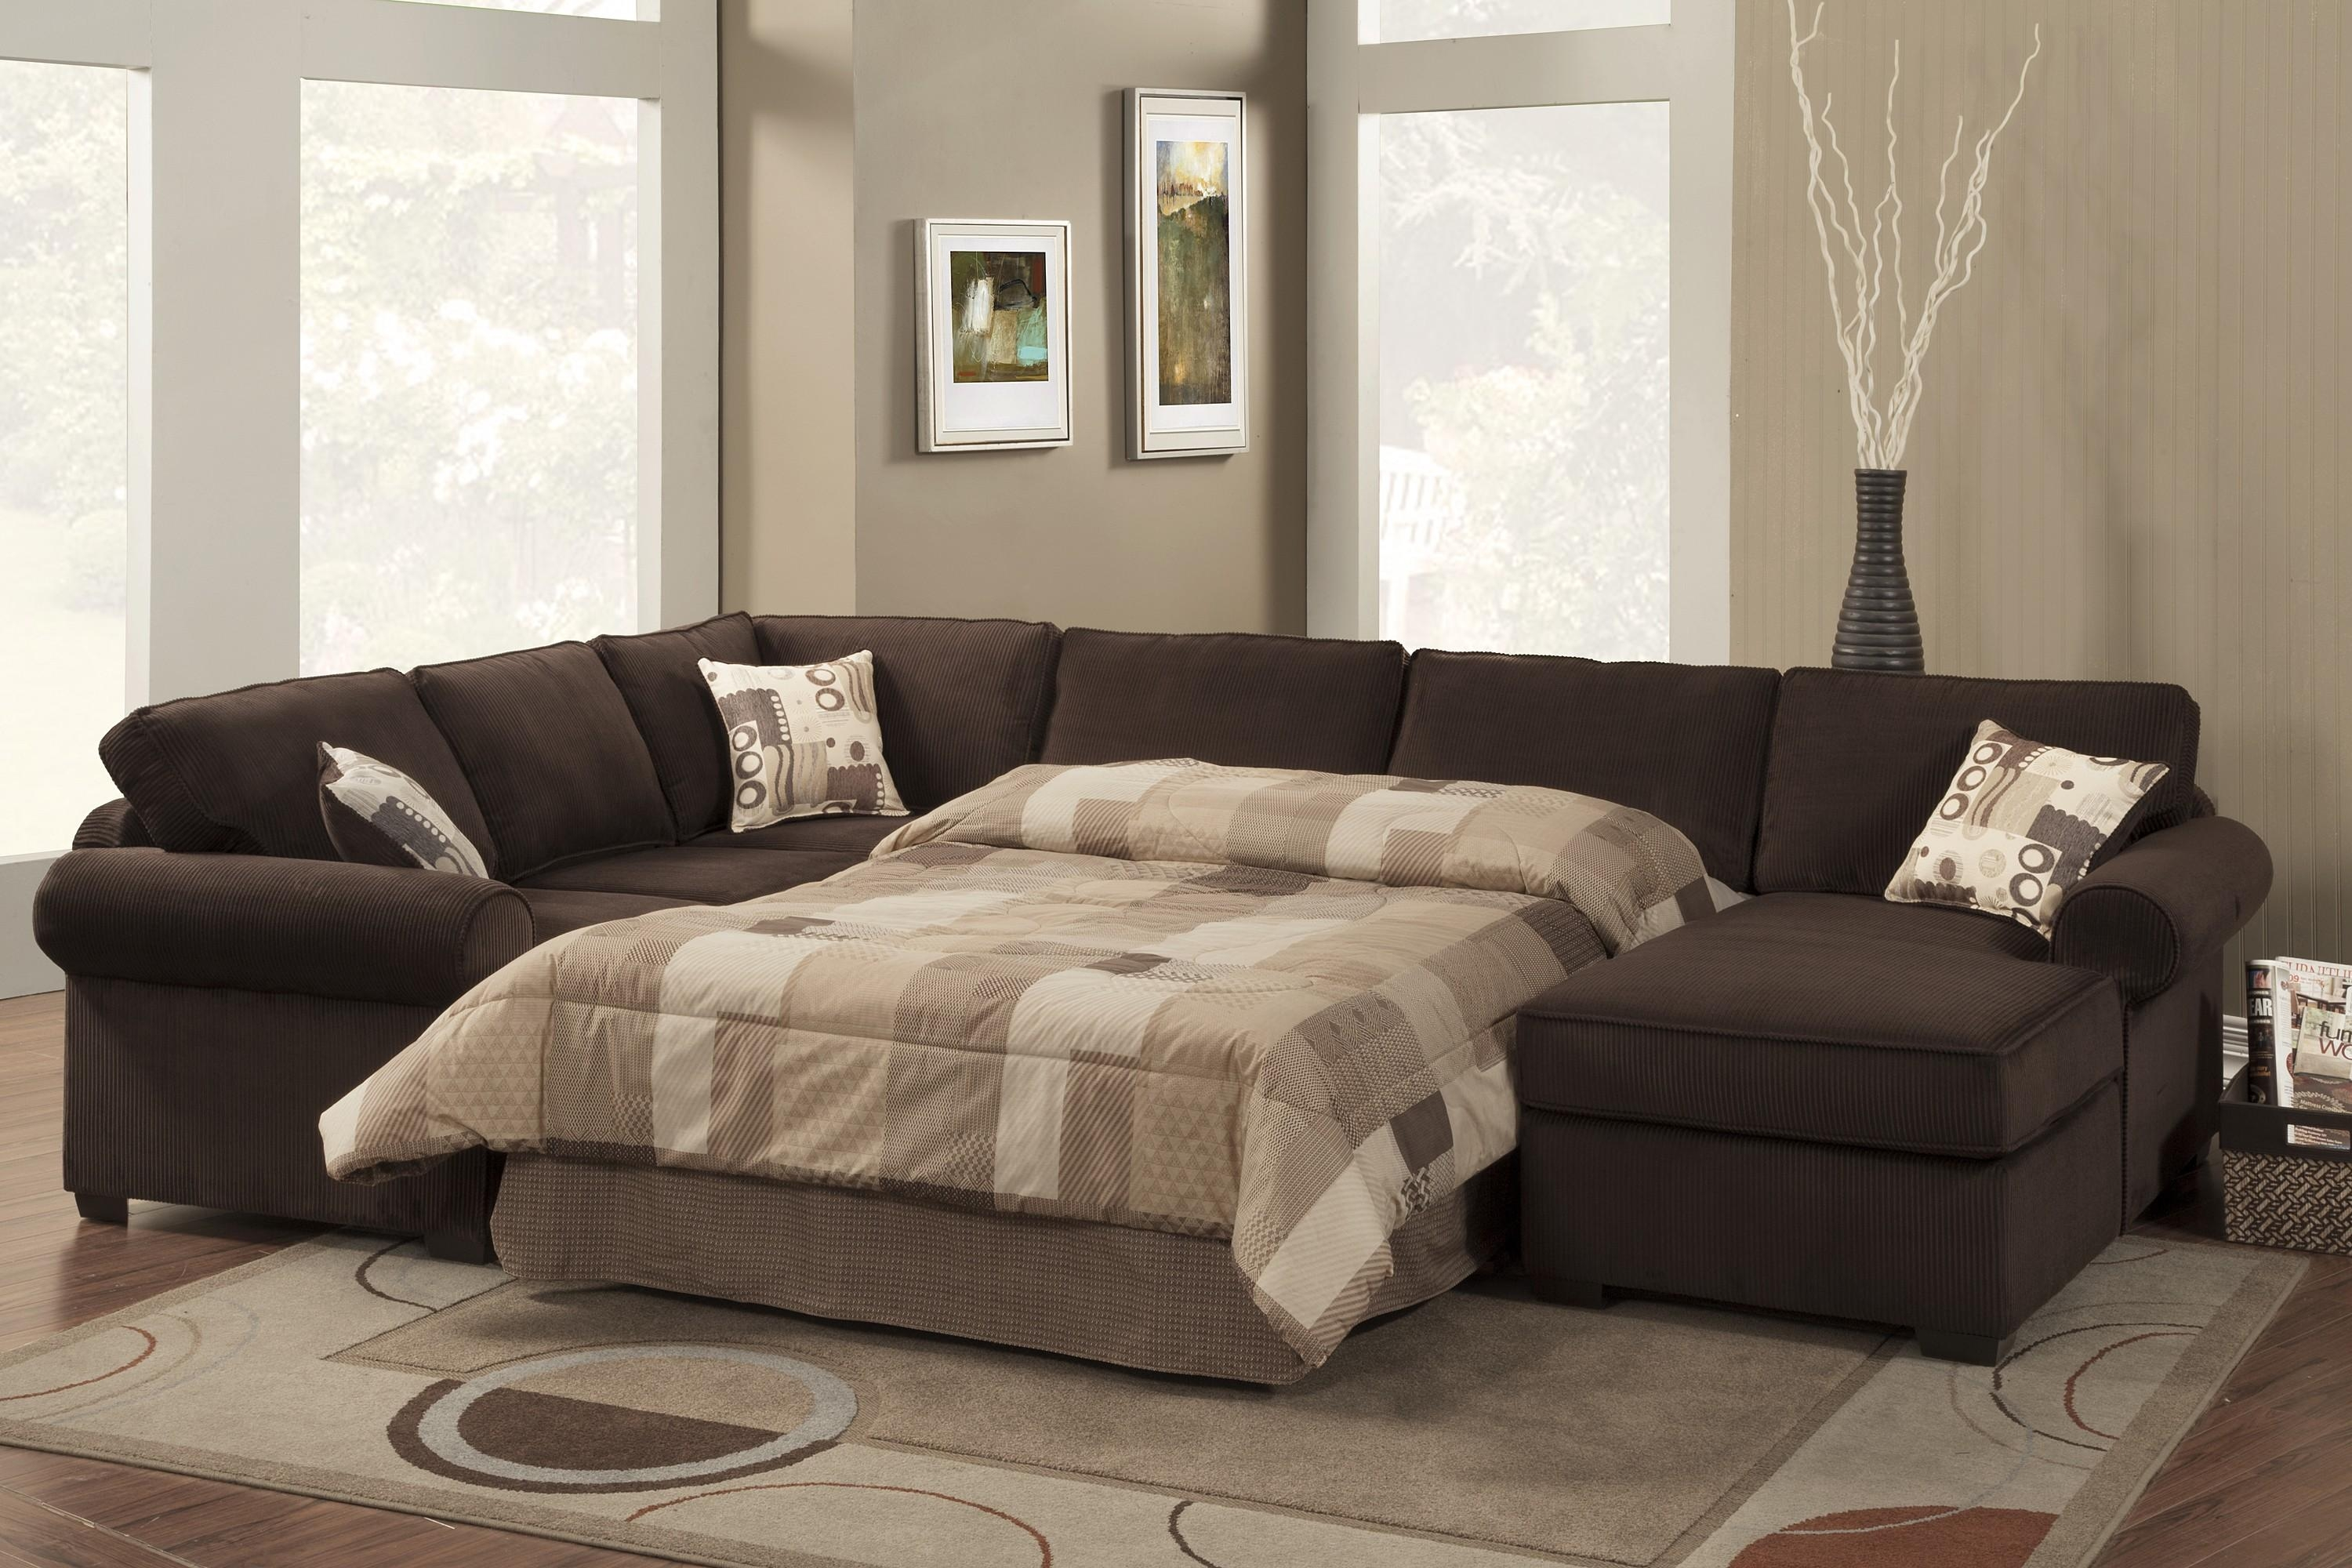 Sectional Sofa With Recliner And Sleeper | Tehranmix Decoration With Regard To Sectional With Recliner And Sleeper (View 4 of 20)